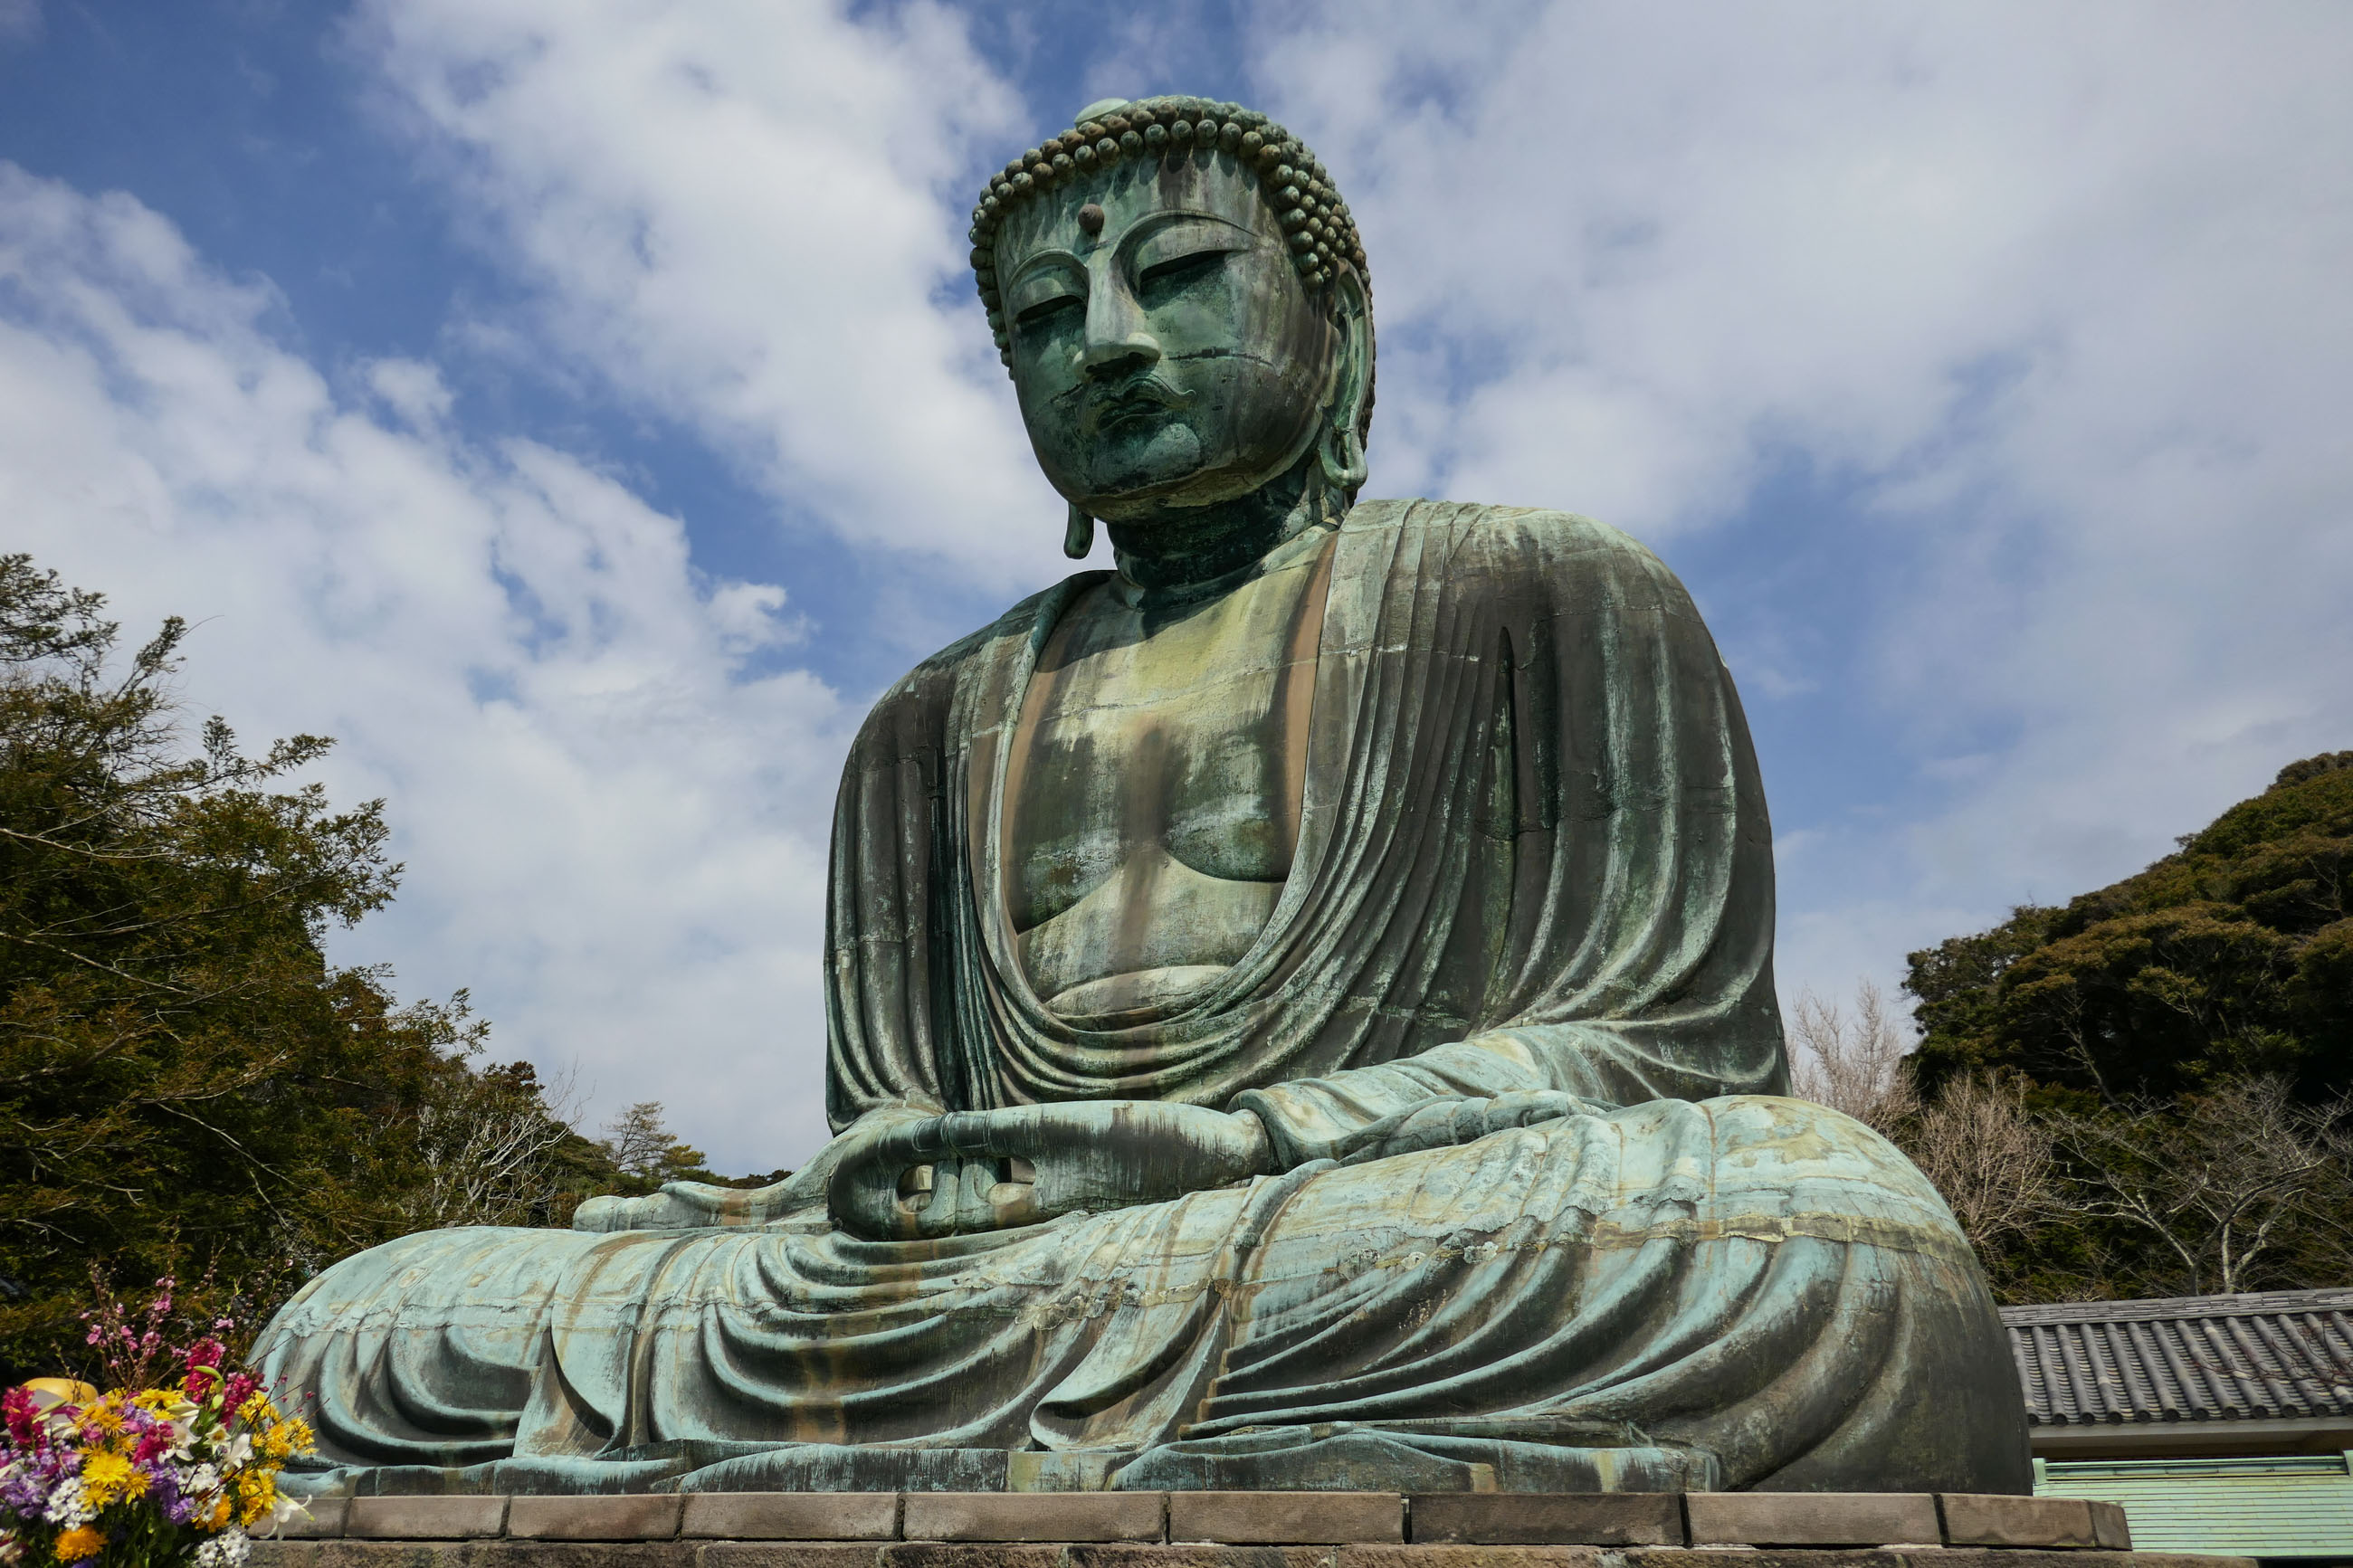 https://bubo.sk/uploads/galleries/3469/martin_simko_big-buddha-v-kamakure.jpg